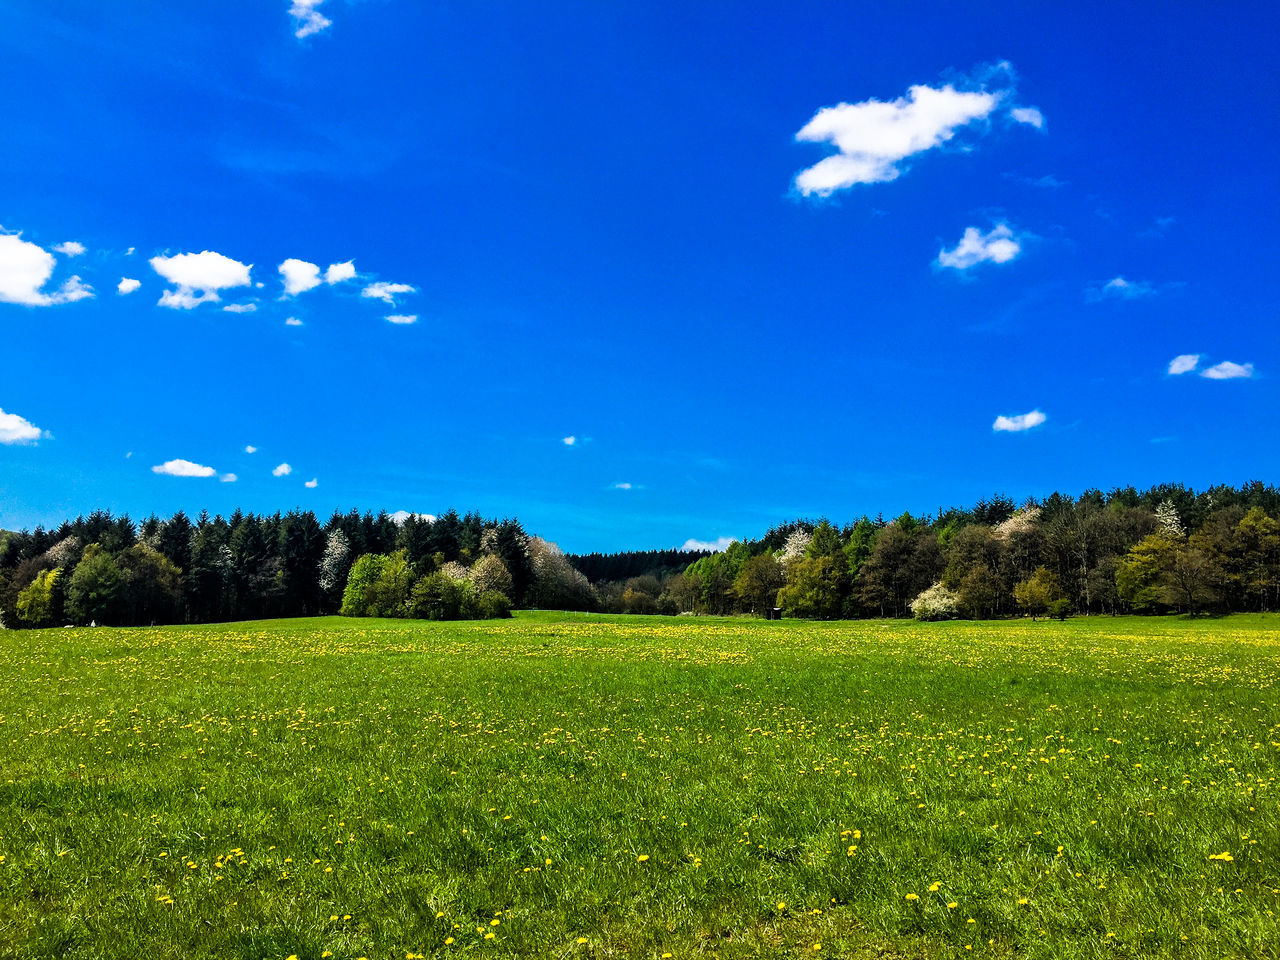 grass, tree, nature, beauty in nature, blue, field, sky, scenics, tranquil scene, tranquility, landscape, green color, growth, no people, cloud - sky, day, blue sky, outdoors, freshness